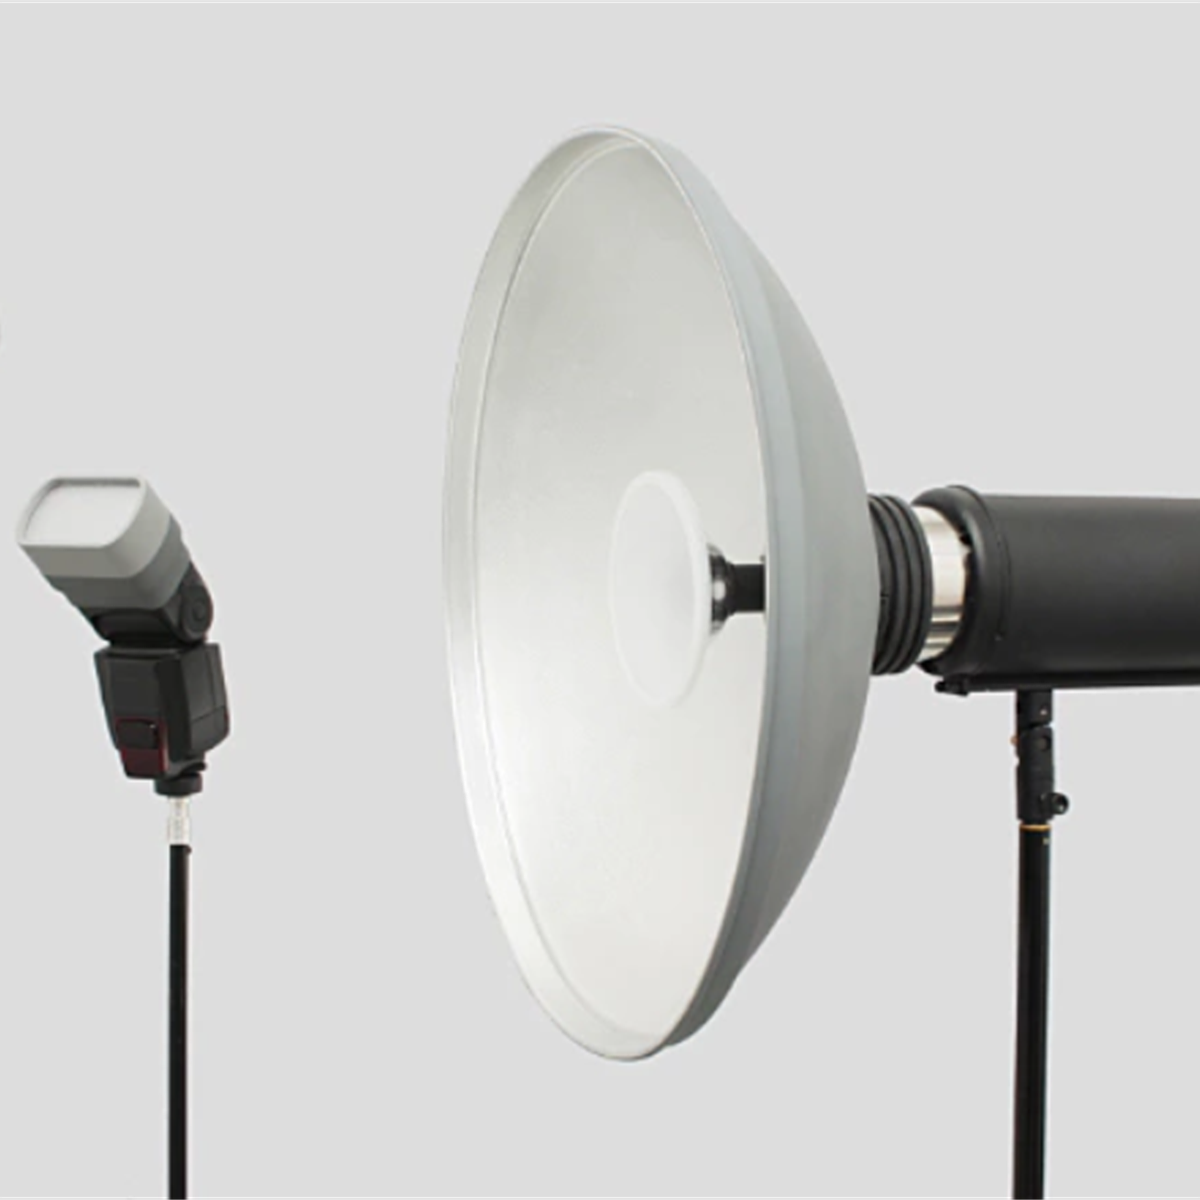 The Isolite Intelligent Modifier System Lets You Change A